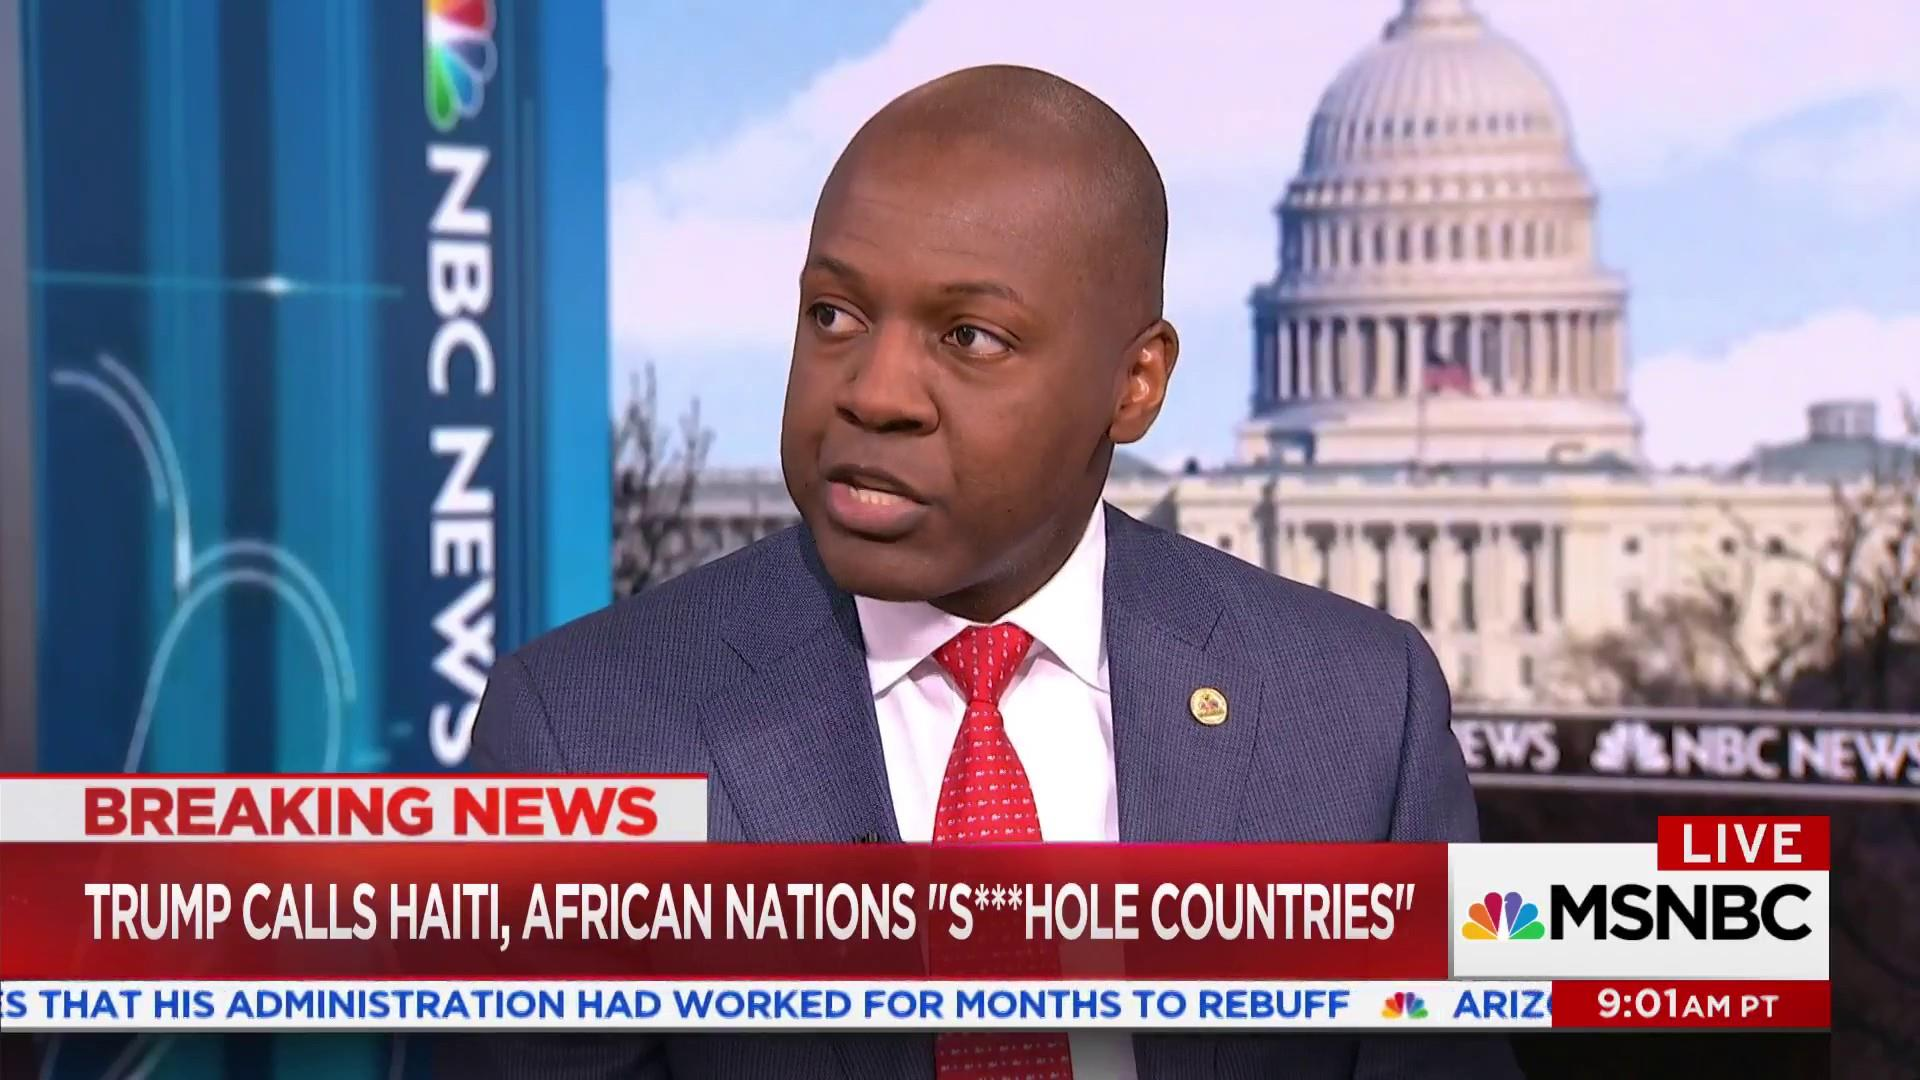 Haiti Amb. 'shocked & disappointed' by Trump's comments